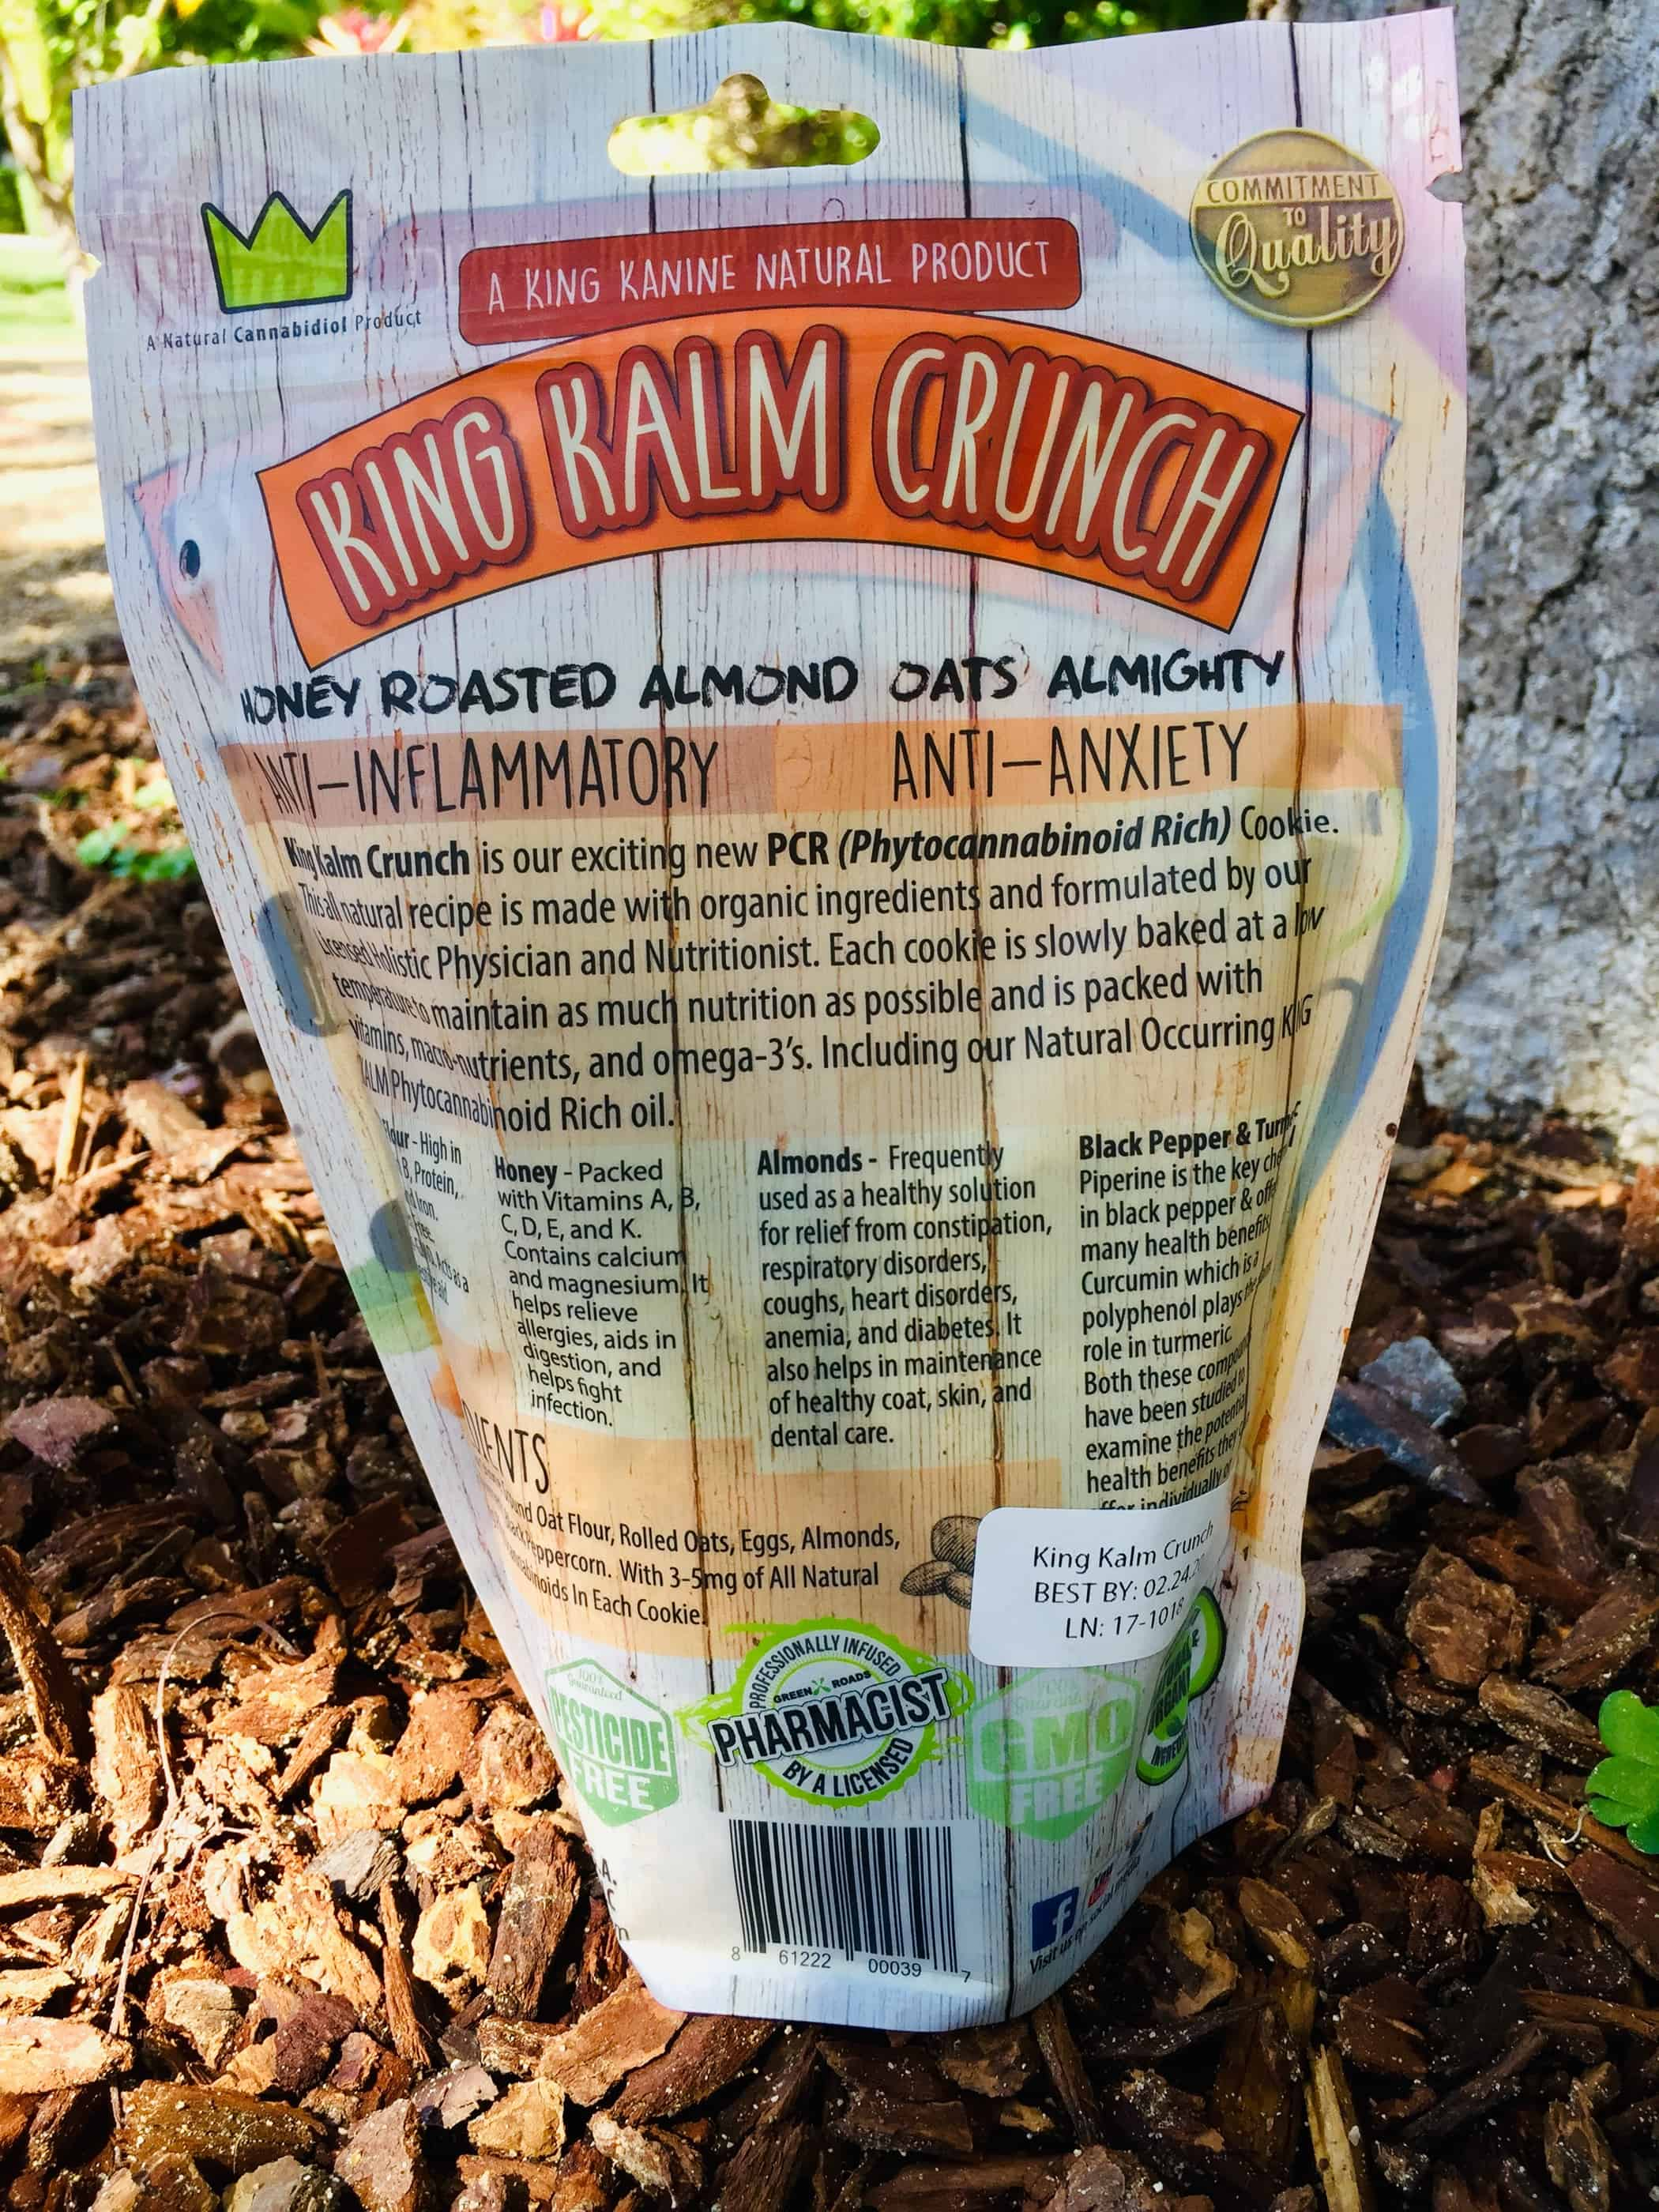 King Kalm Crunch Save On Cannabis Review Specifications